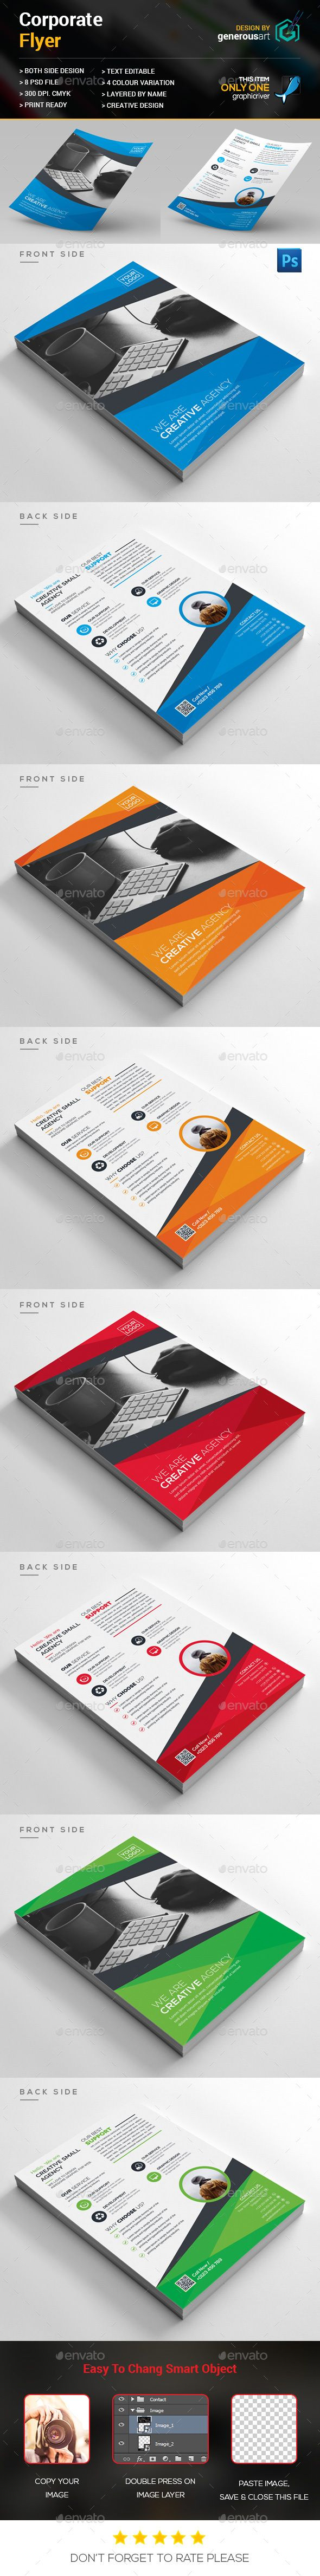 Corporate Flyer Template PSD. Download here: http://graphicriver.net/item/corporate-flyer/15486514?ref=ksioks